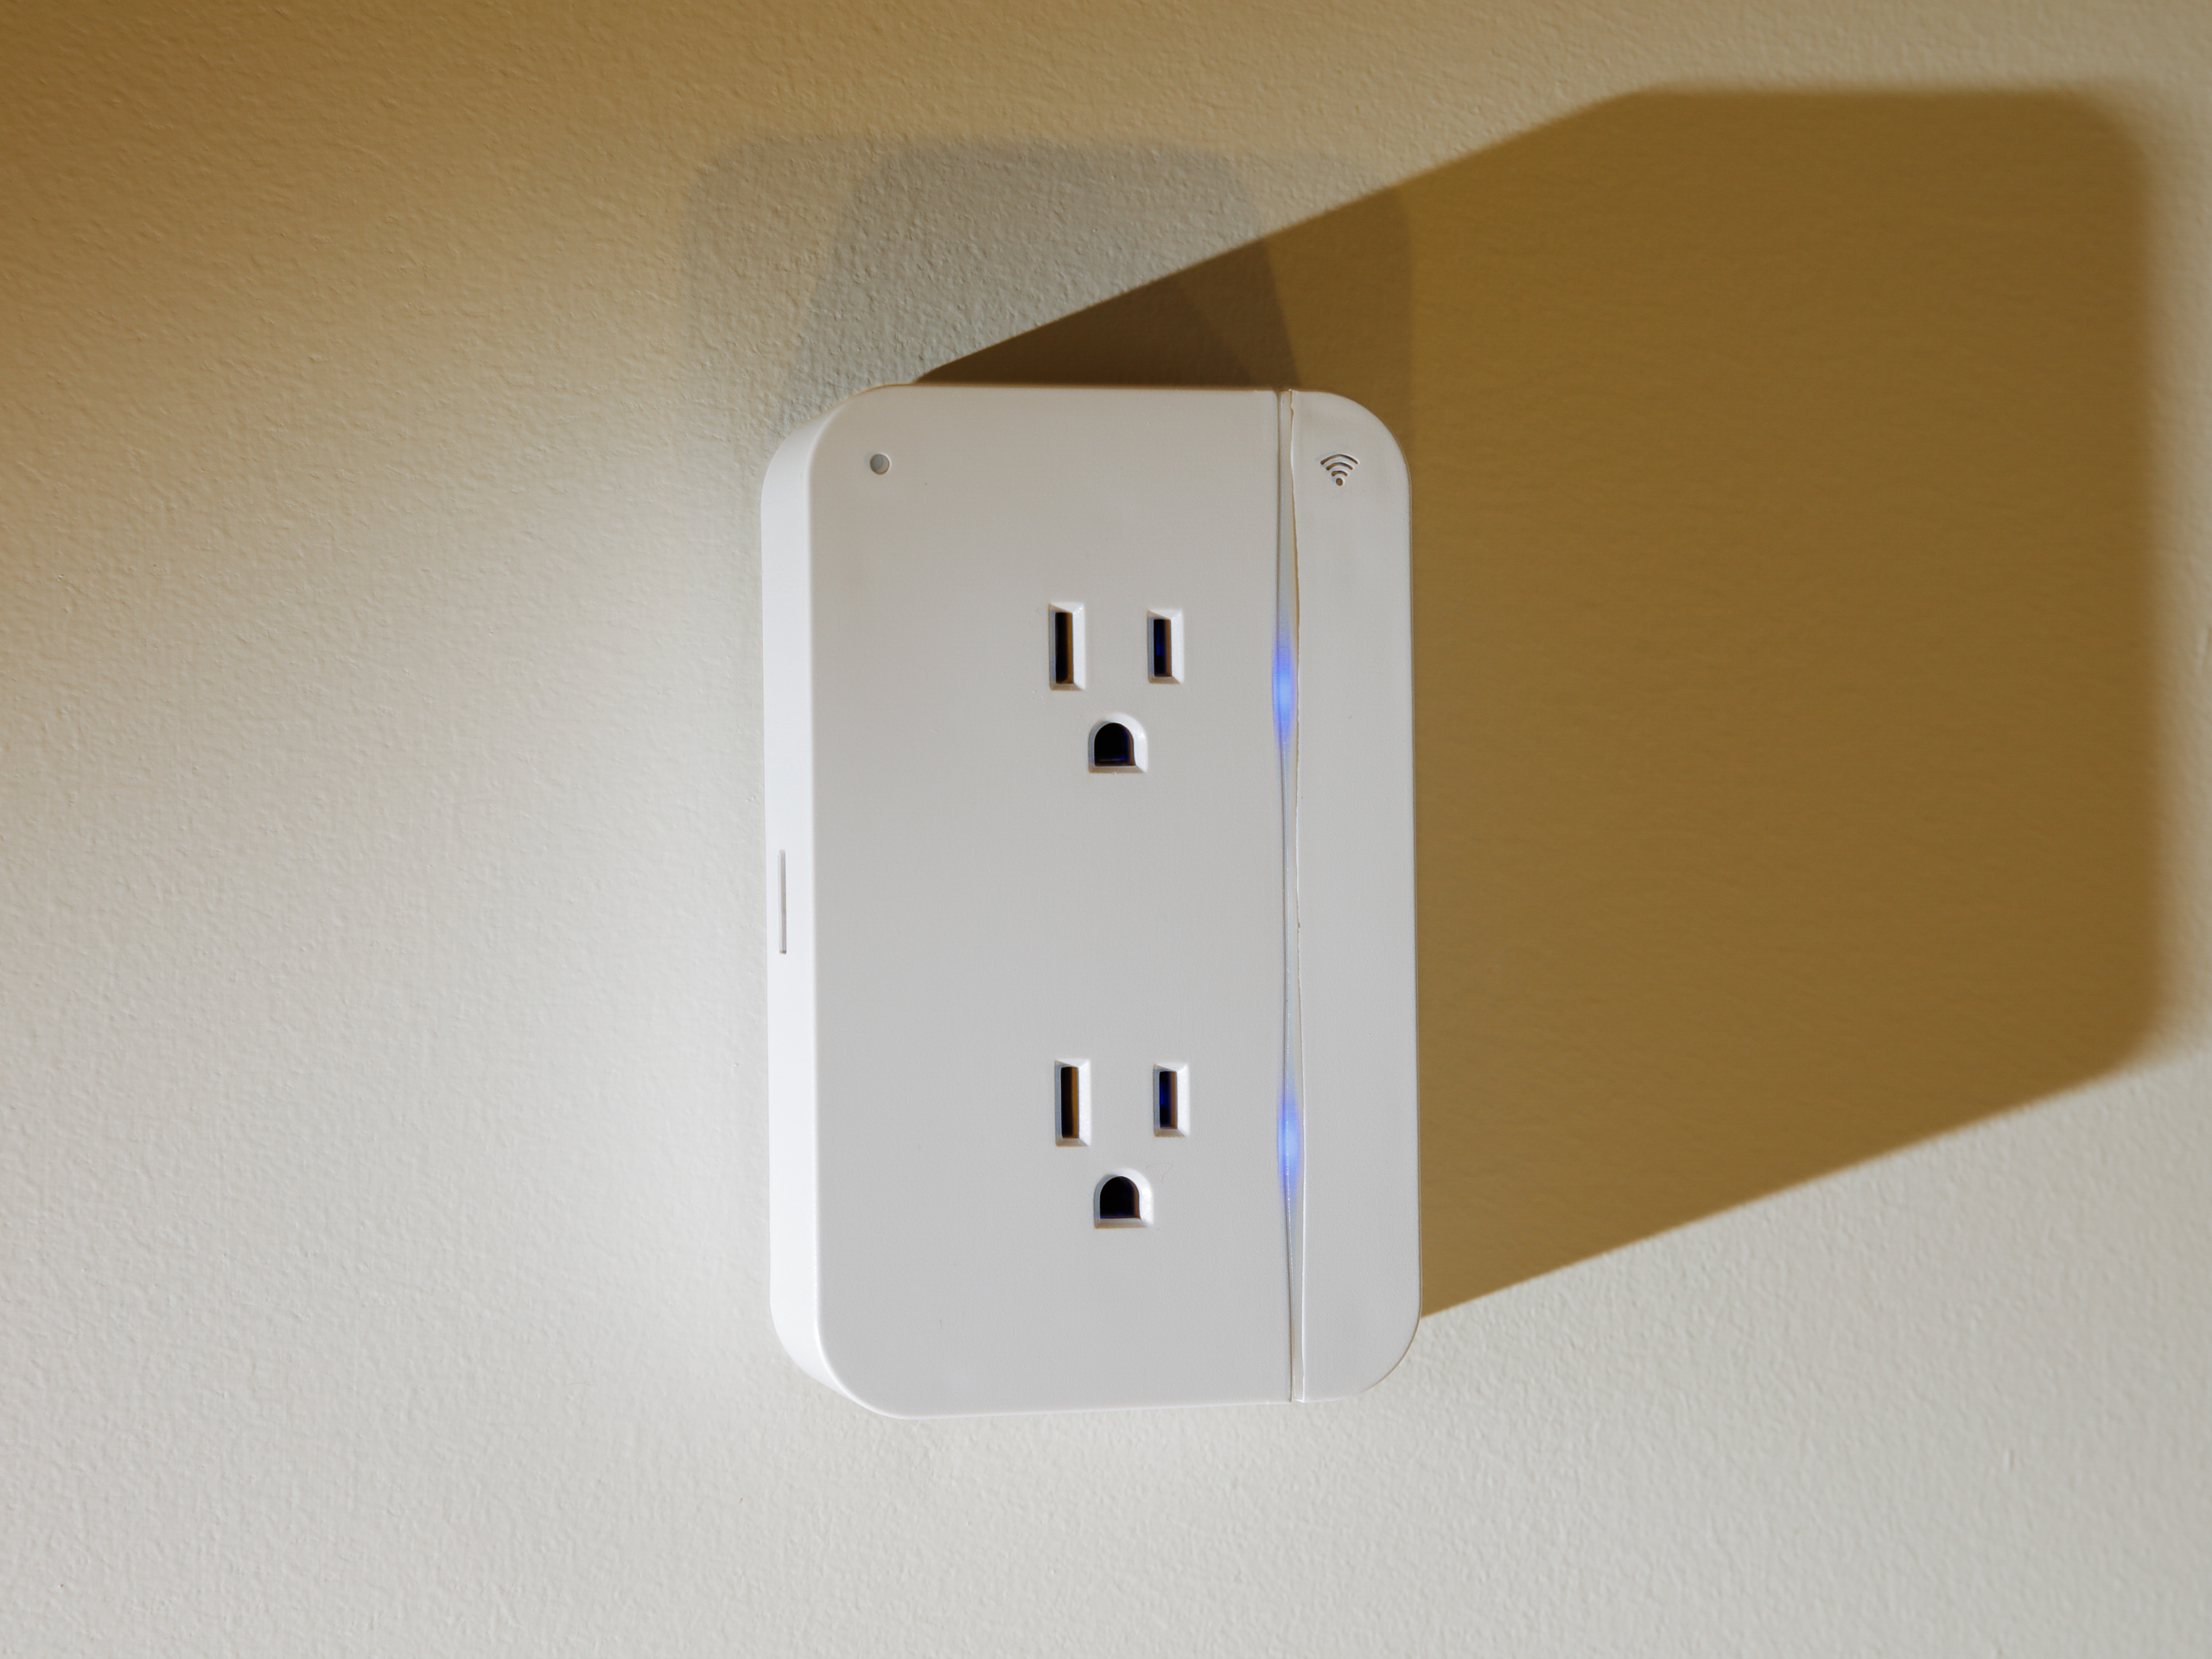 grid-connect-connect-sense-smart-outlet-product-photos-6.jpg